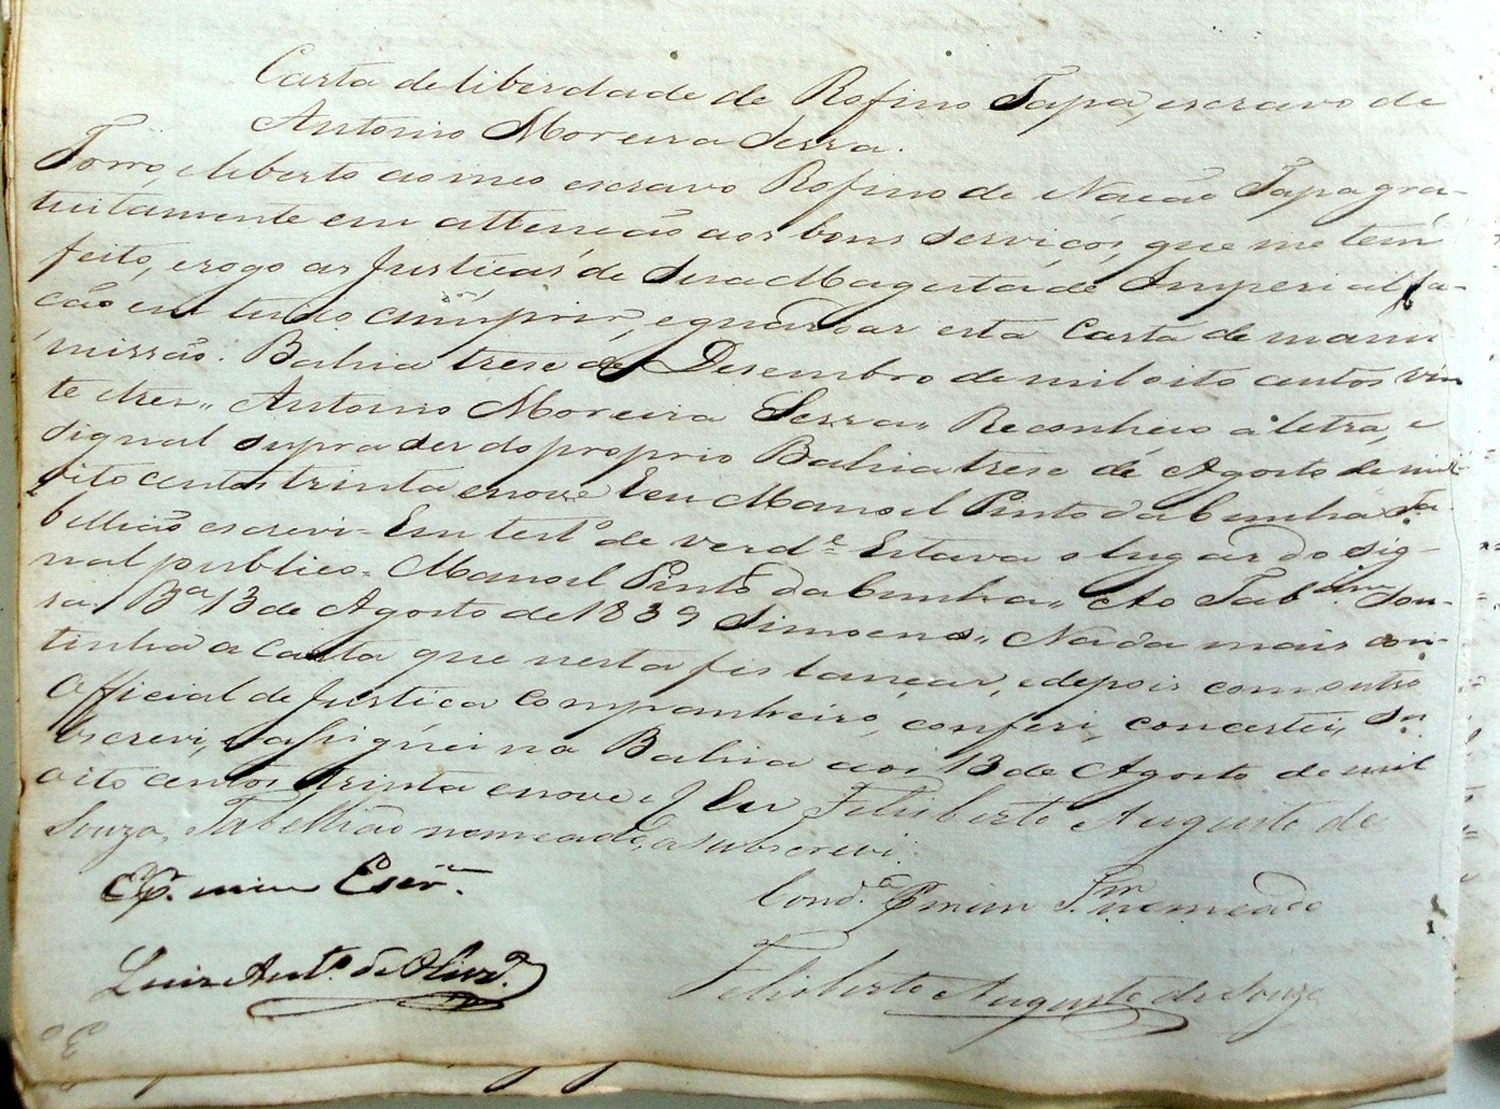 Freedom letter of Rufino Tapa, slave of Antonio Moreira Serra, issued on 13 December 1823. Although most masters required their slaves to pay market prices in exchange for their freedom, Rufino was fortunate in receiving his freedom at no cost and with no obligations. Rufino was a Xangô worshipper and in Bahia was associated with the terreiro led by Xangô priestess Francisca da Silva, who held the title of Iyá Nassô. Her terreiro exists to this day, known as Ilê Iyá Nassô Oká, nicknamed the Casa Branca. Source: Arquivo Publico da Bahia, photo taken by Lisa Earl Castillo